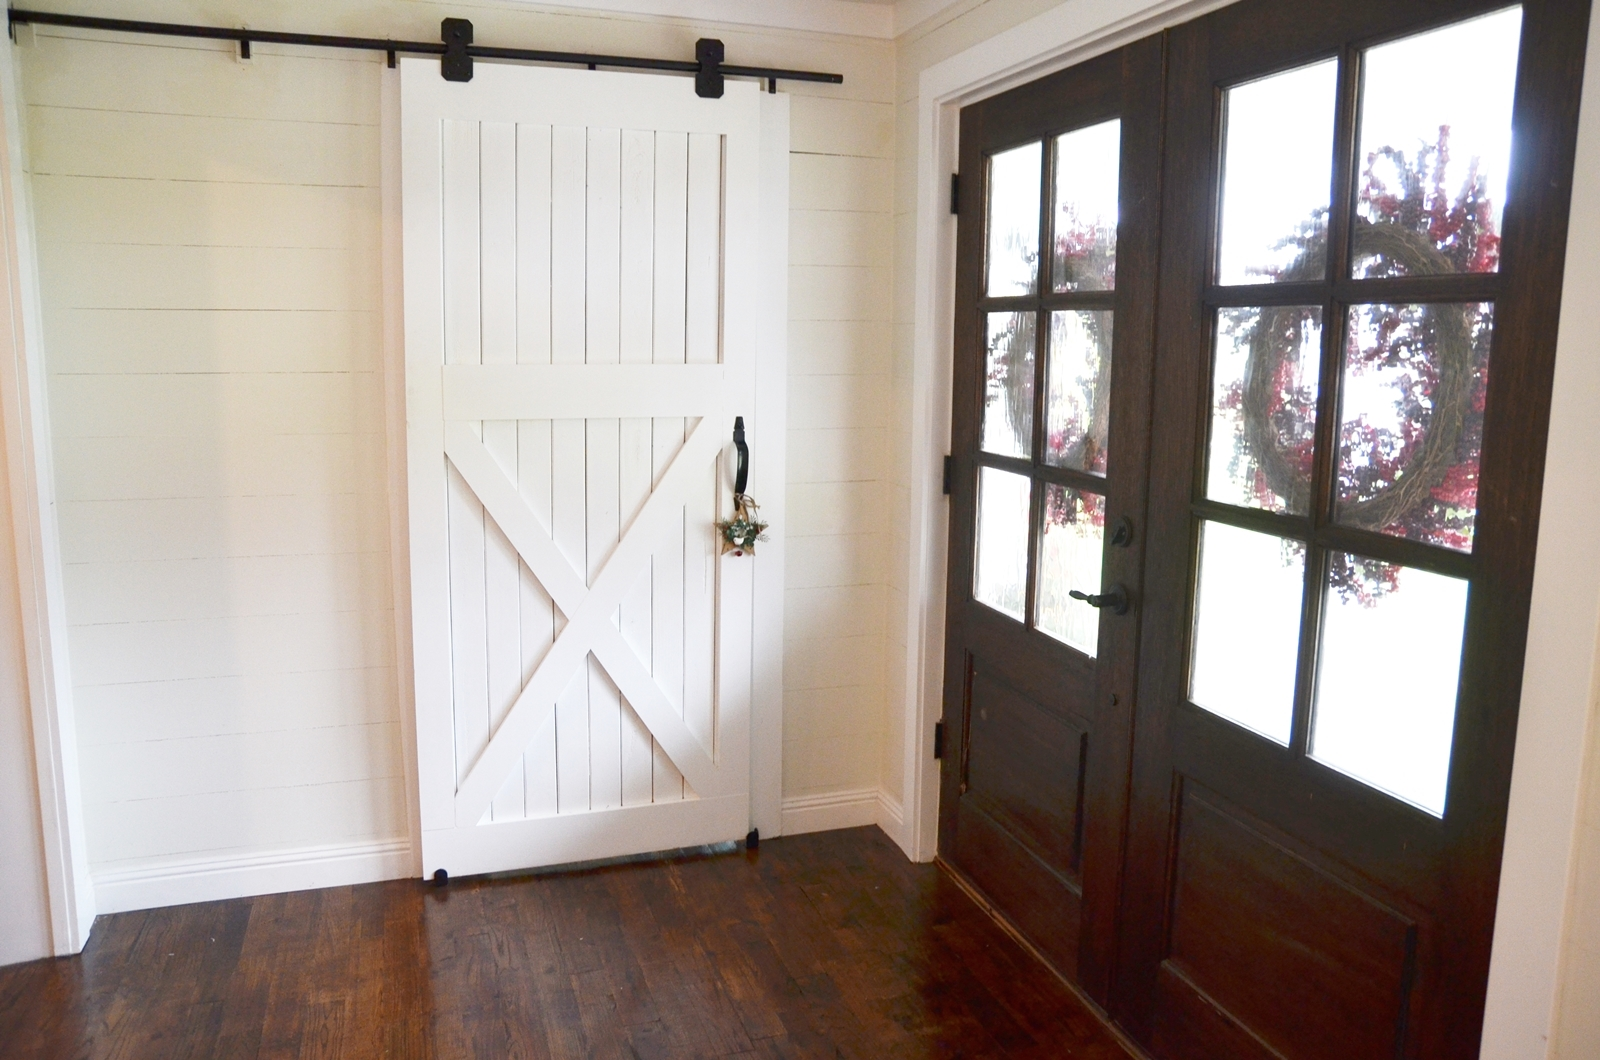 How to hang barn door hang doors do it yourself door for Hanging a sliding barn door